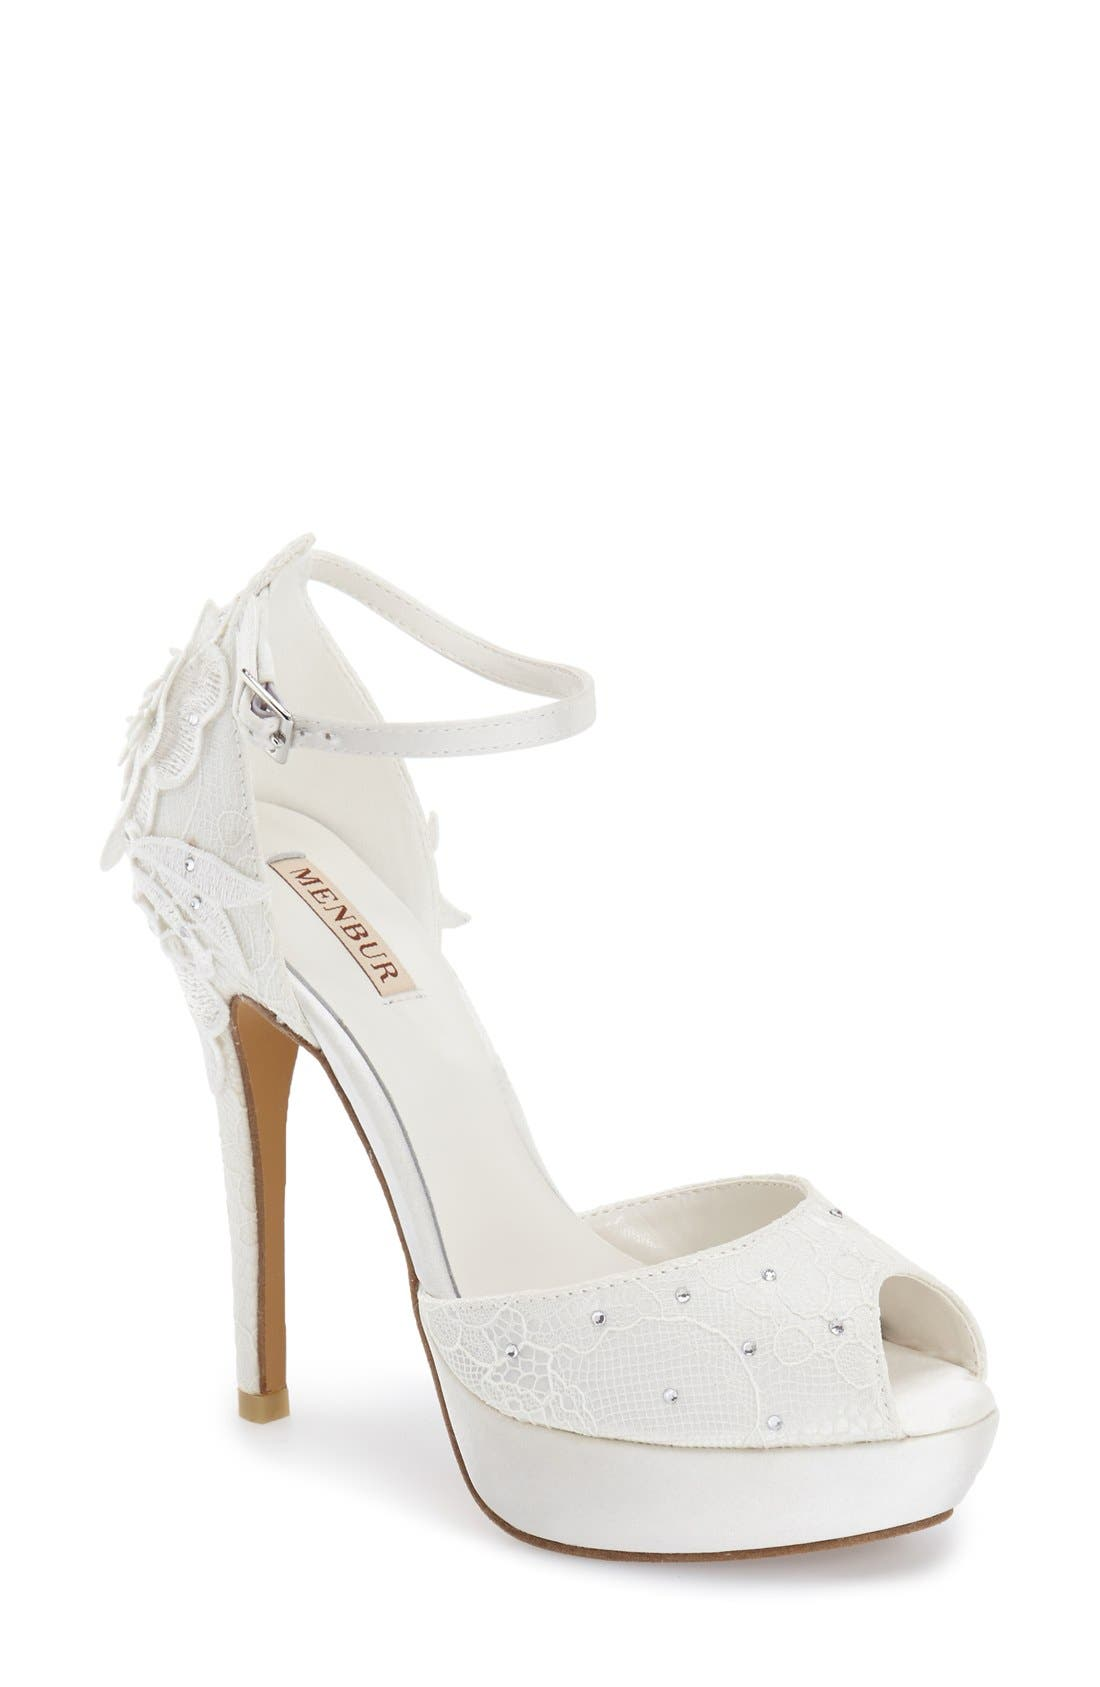 Alternate Image 1 Selected - Menbur 'Dafne' Lace & Crystal Platform Sandal (Women)